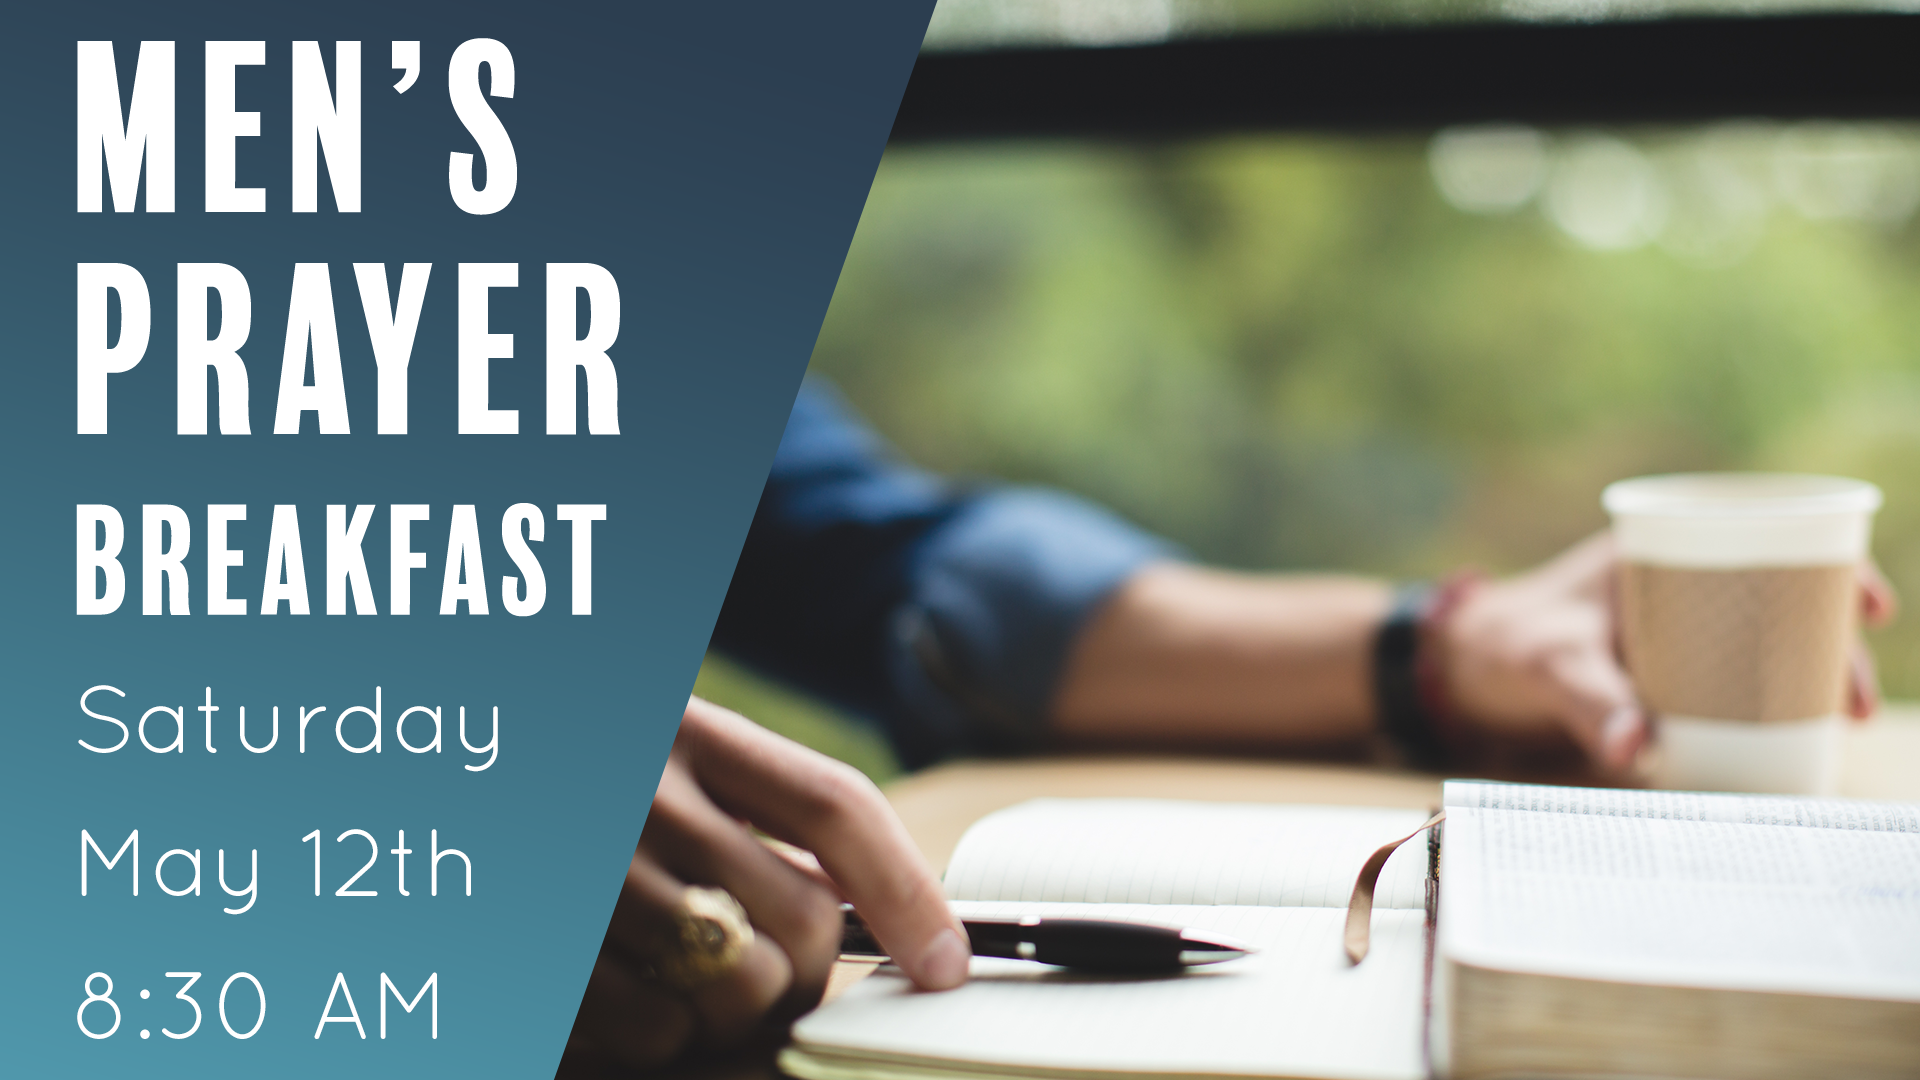 Men's Prayer Breakfast in the cafe on May 12th at 8:30am